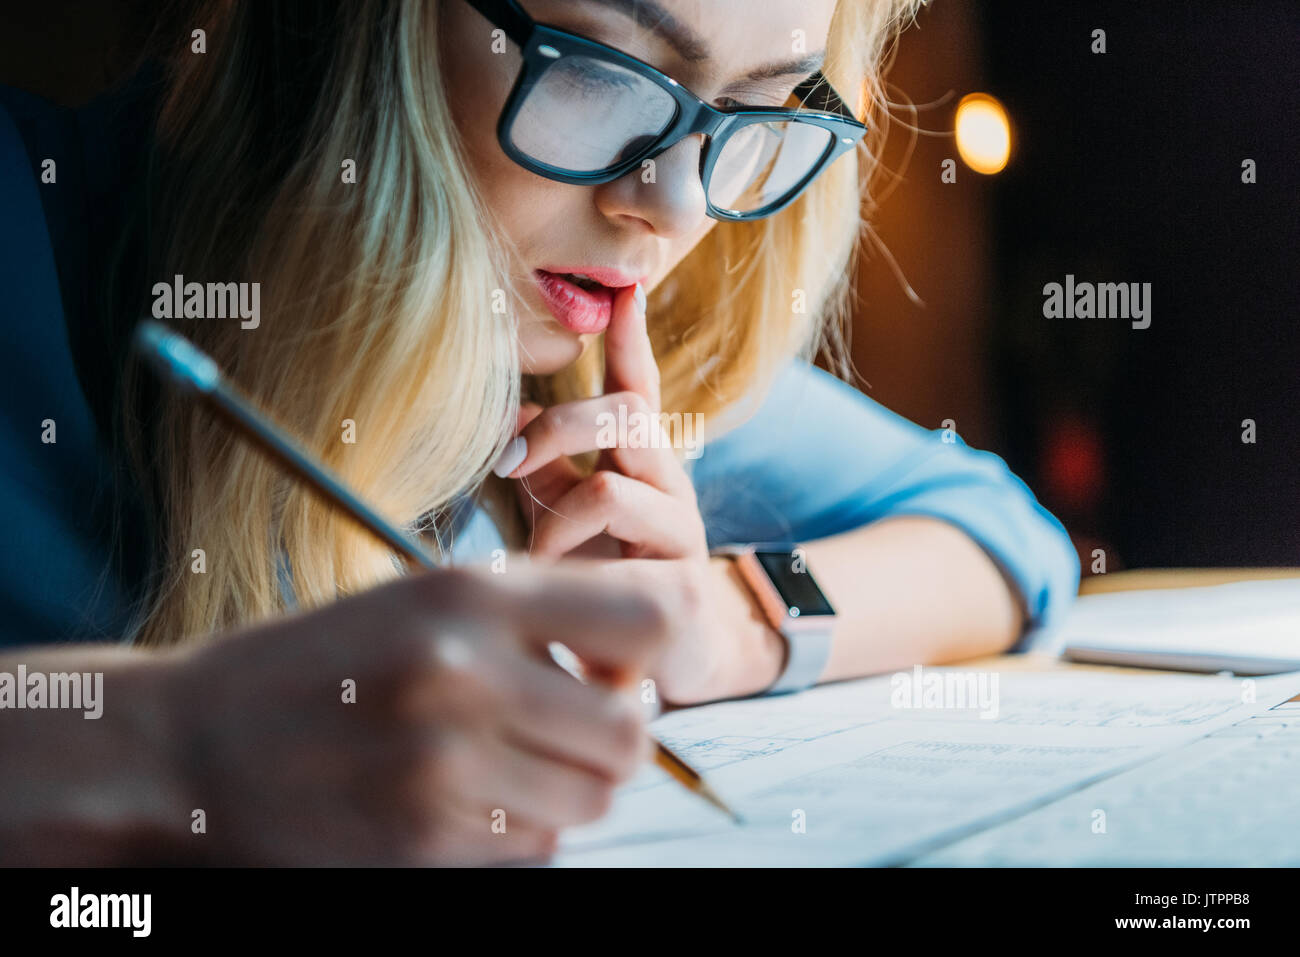 young blonde caucasian student in eyeglasses thinking and writing something with pencil, studying till late - Stock Image